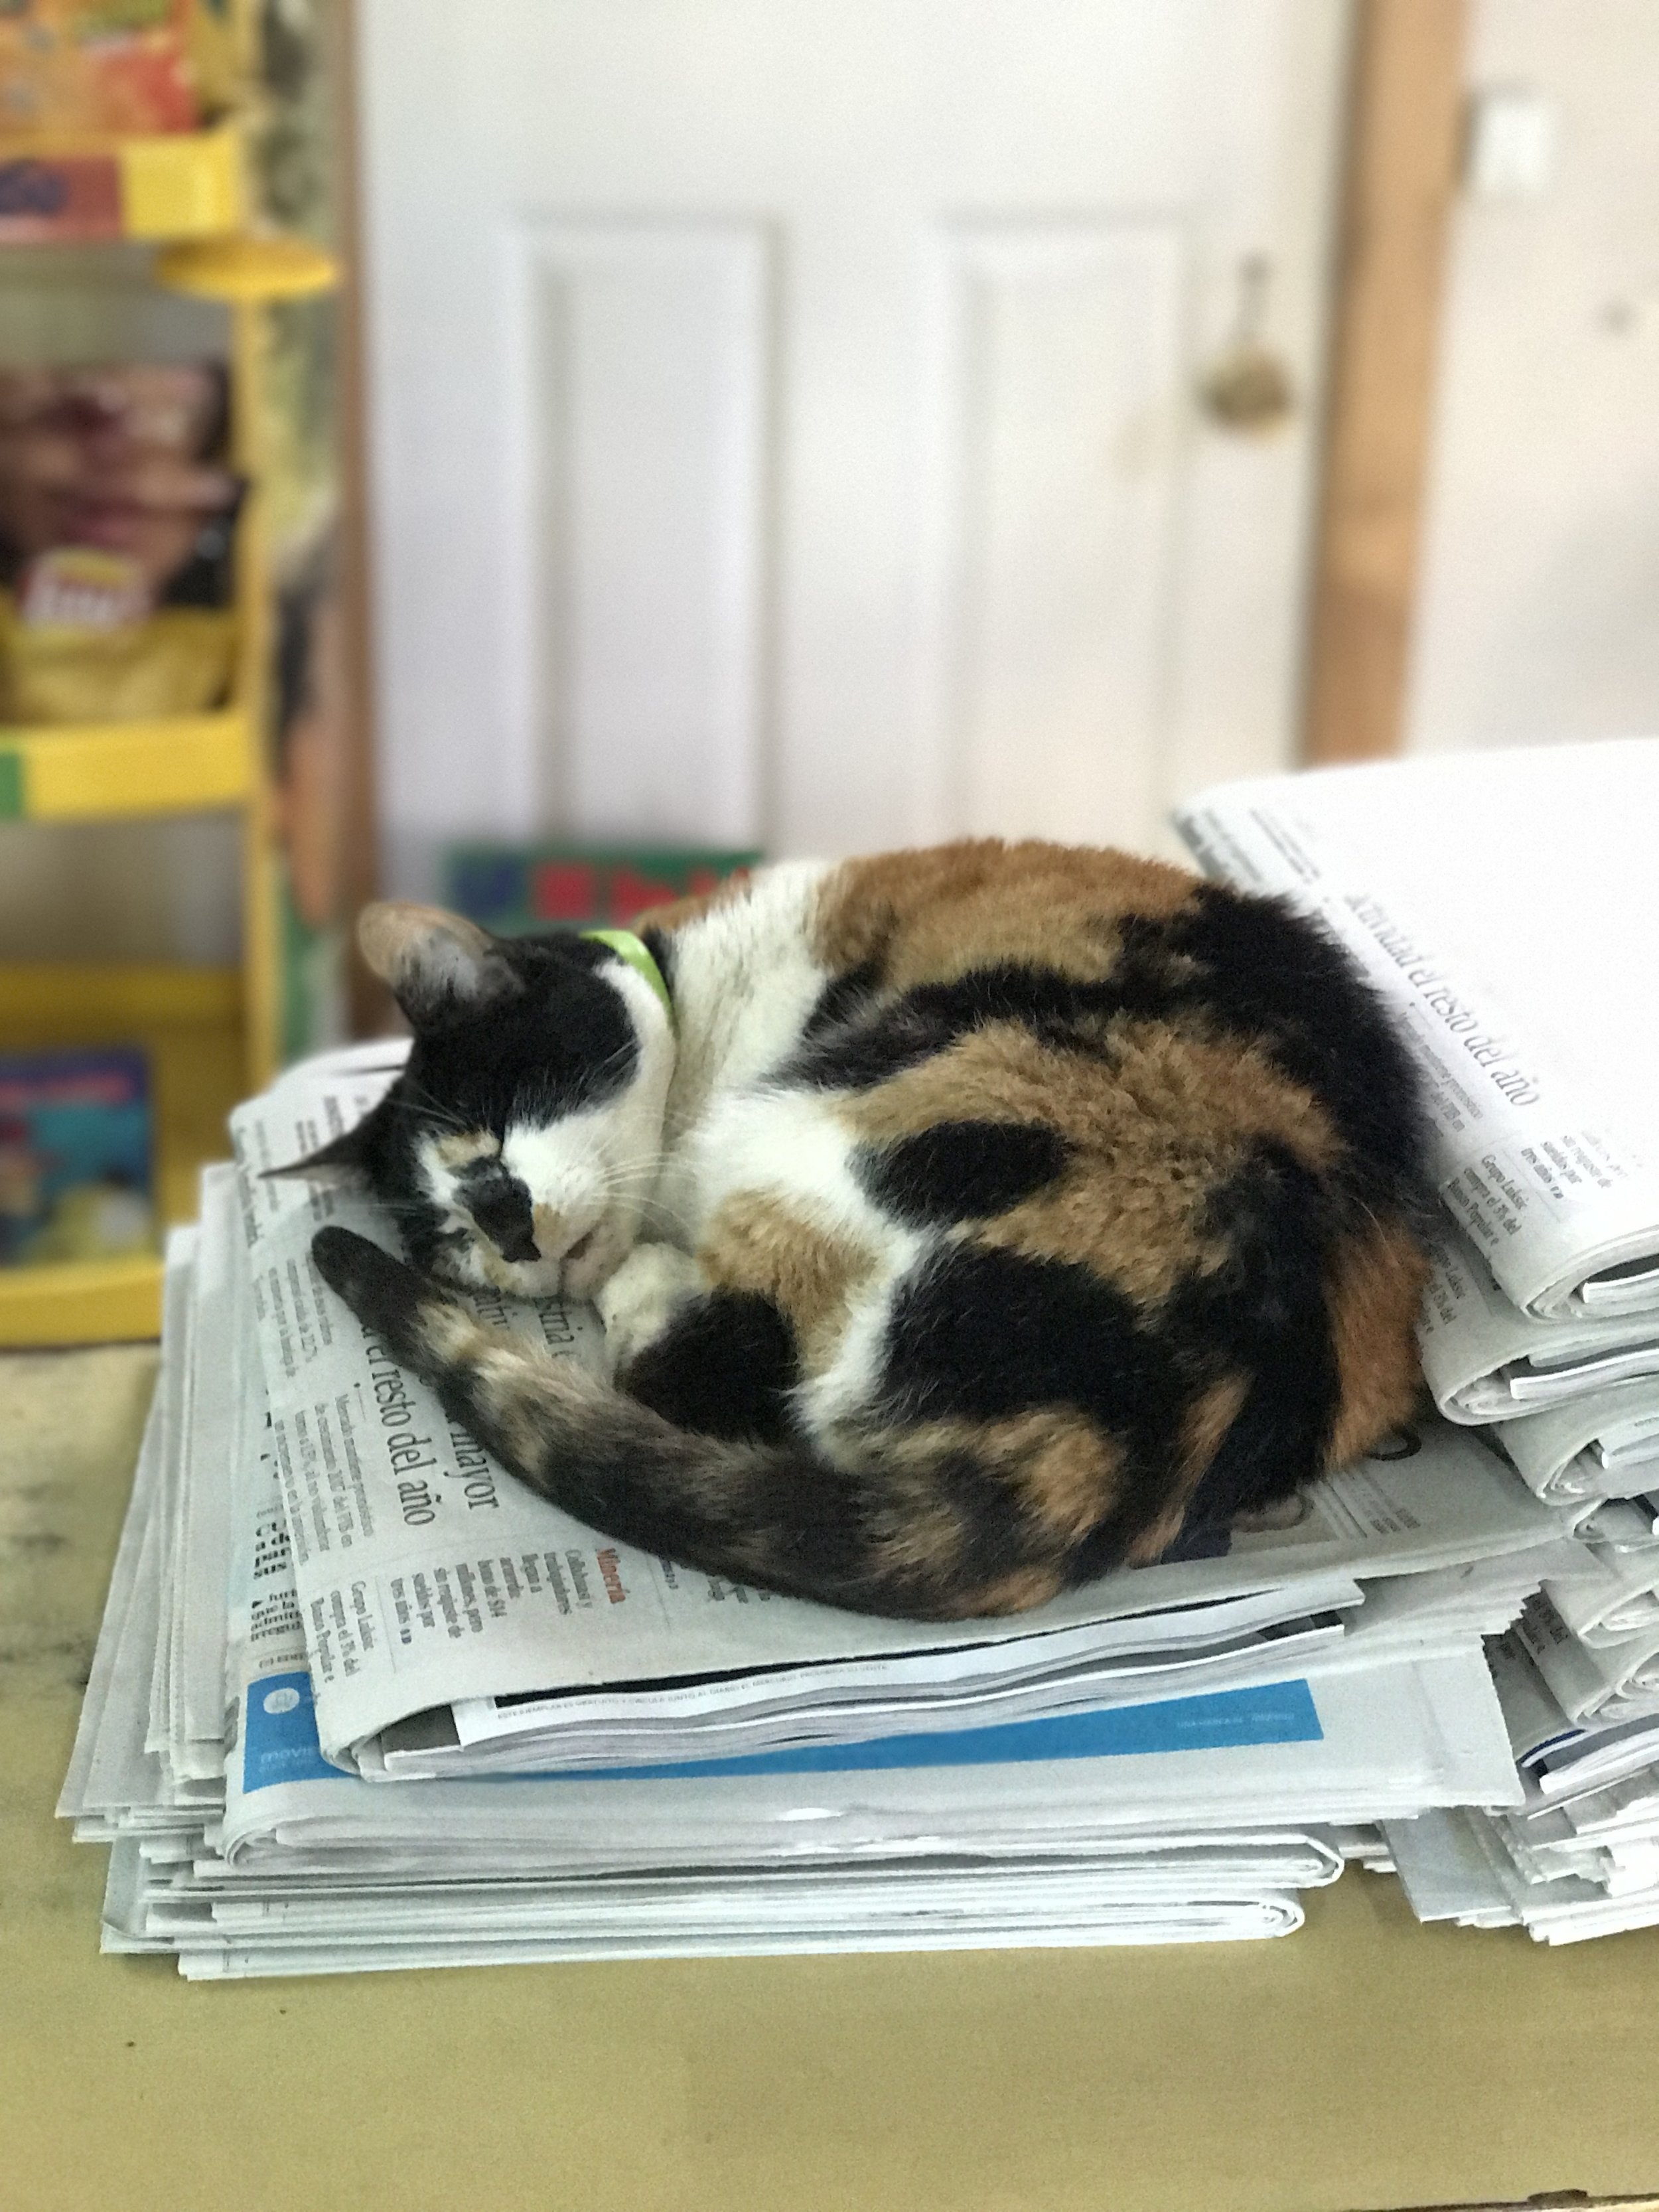 Where culture comes alive: a cat sleeping on top of newspapers in a small store in Zapallar.